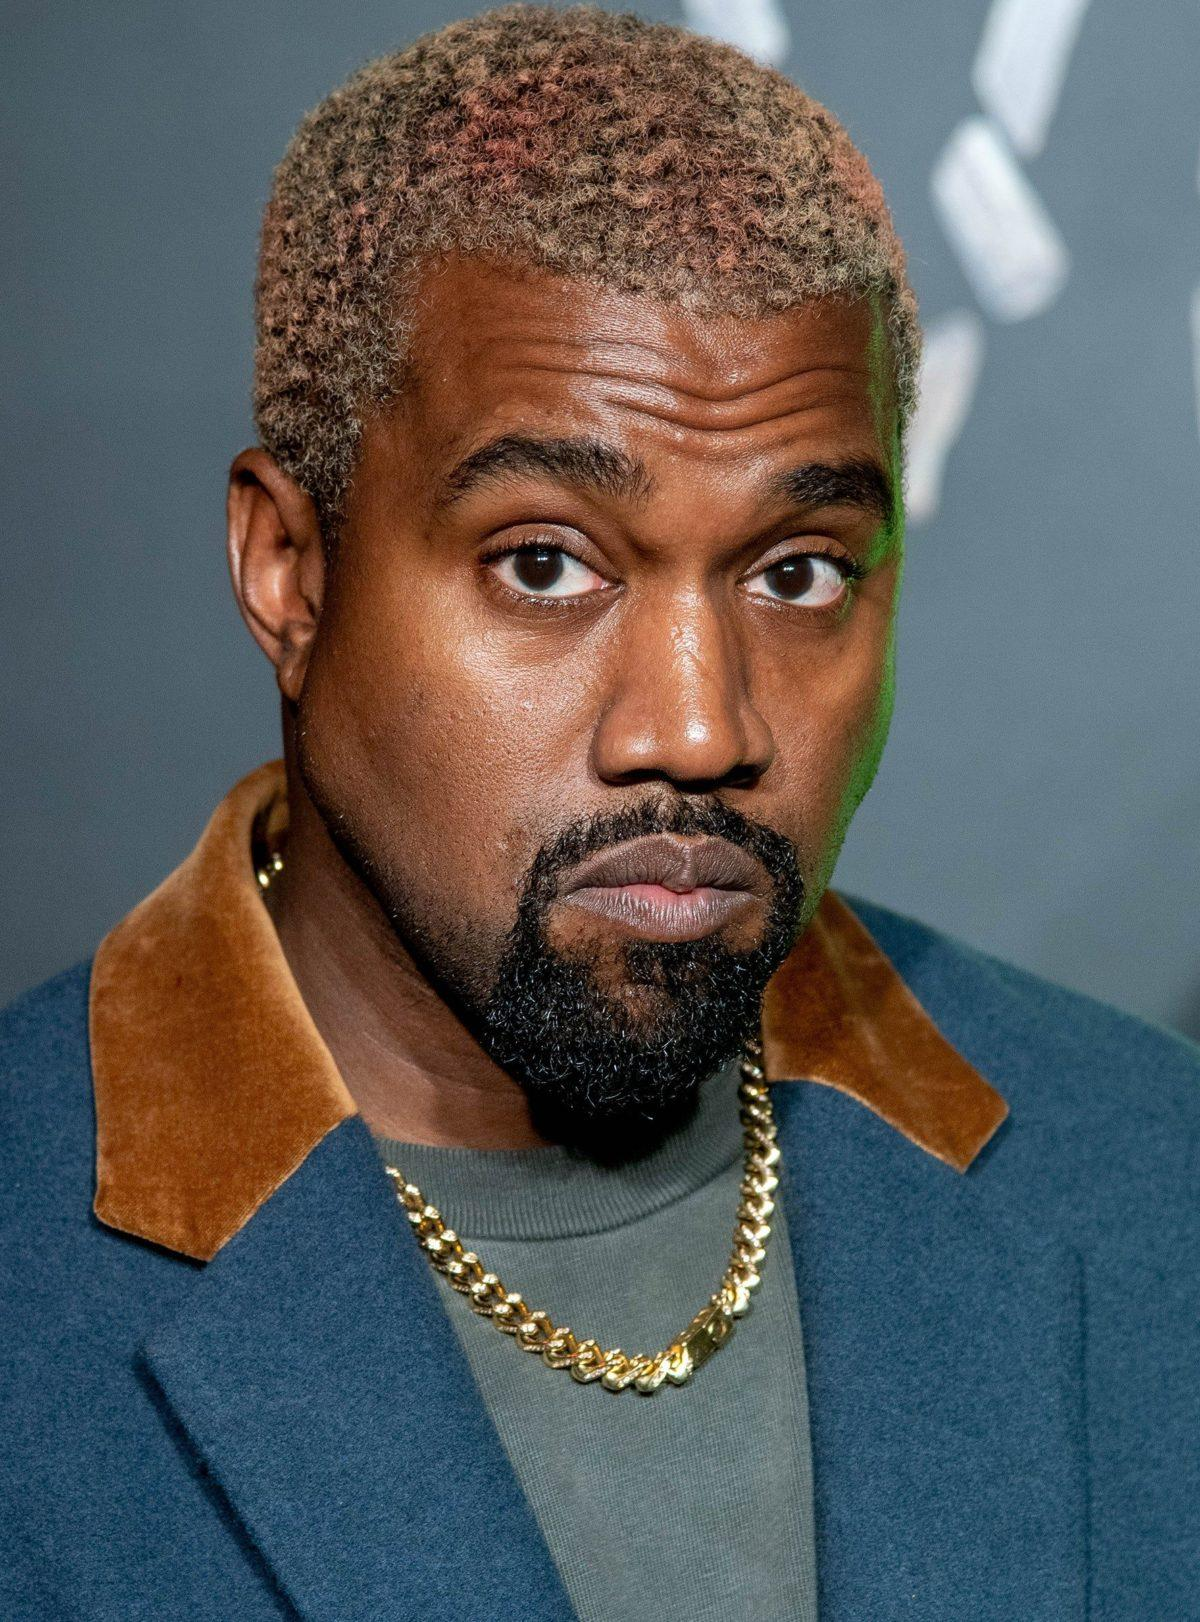 Kanye West is reportedly having a bipolar episode